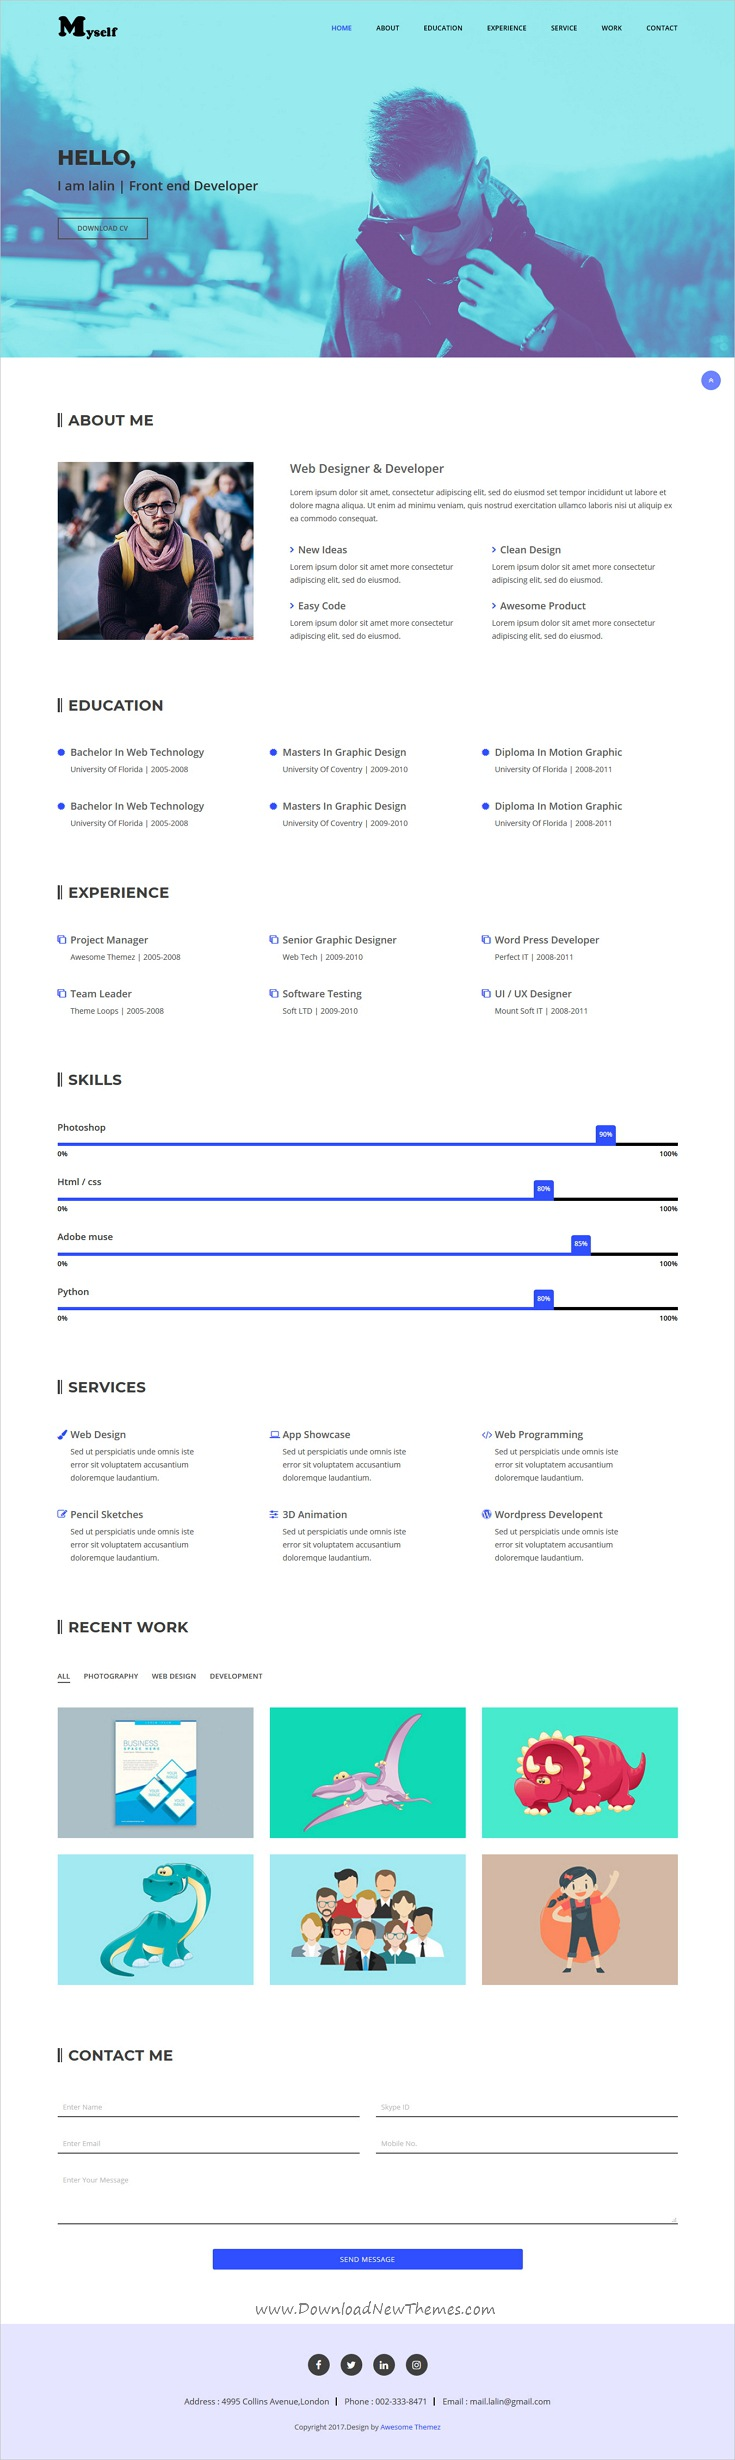 MYSELF Resume or Portfolio HTML Template (With images